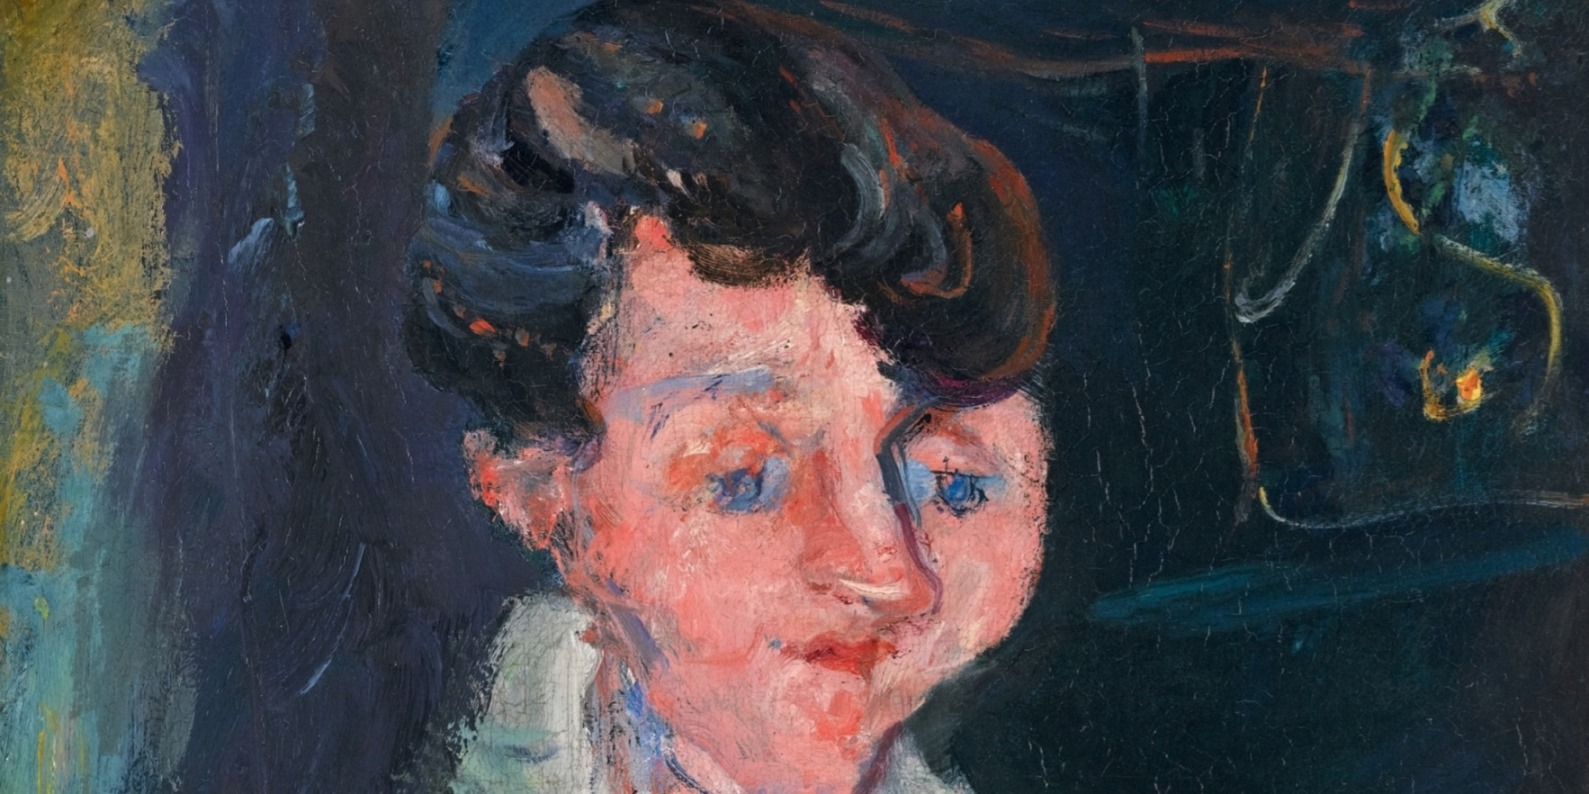 Soutine, Chaim, detail